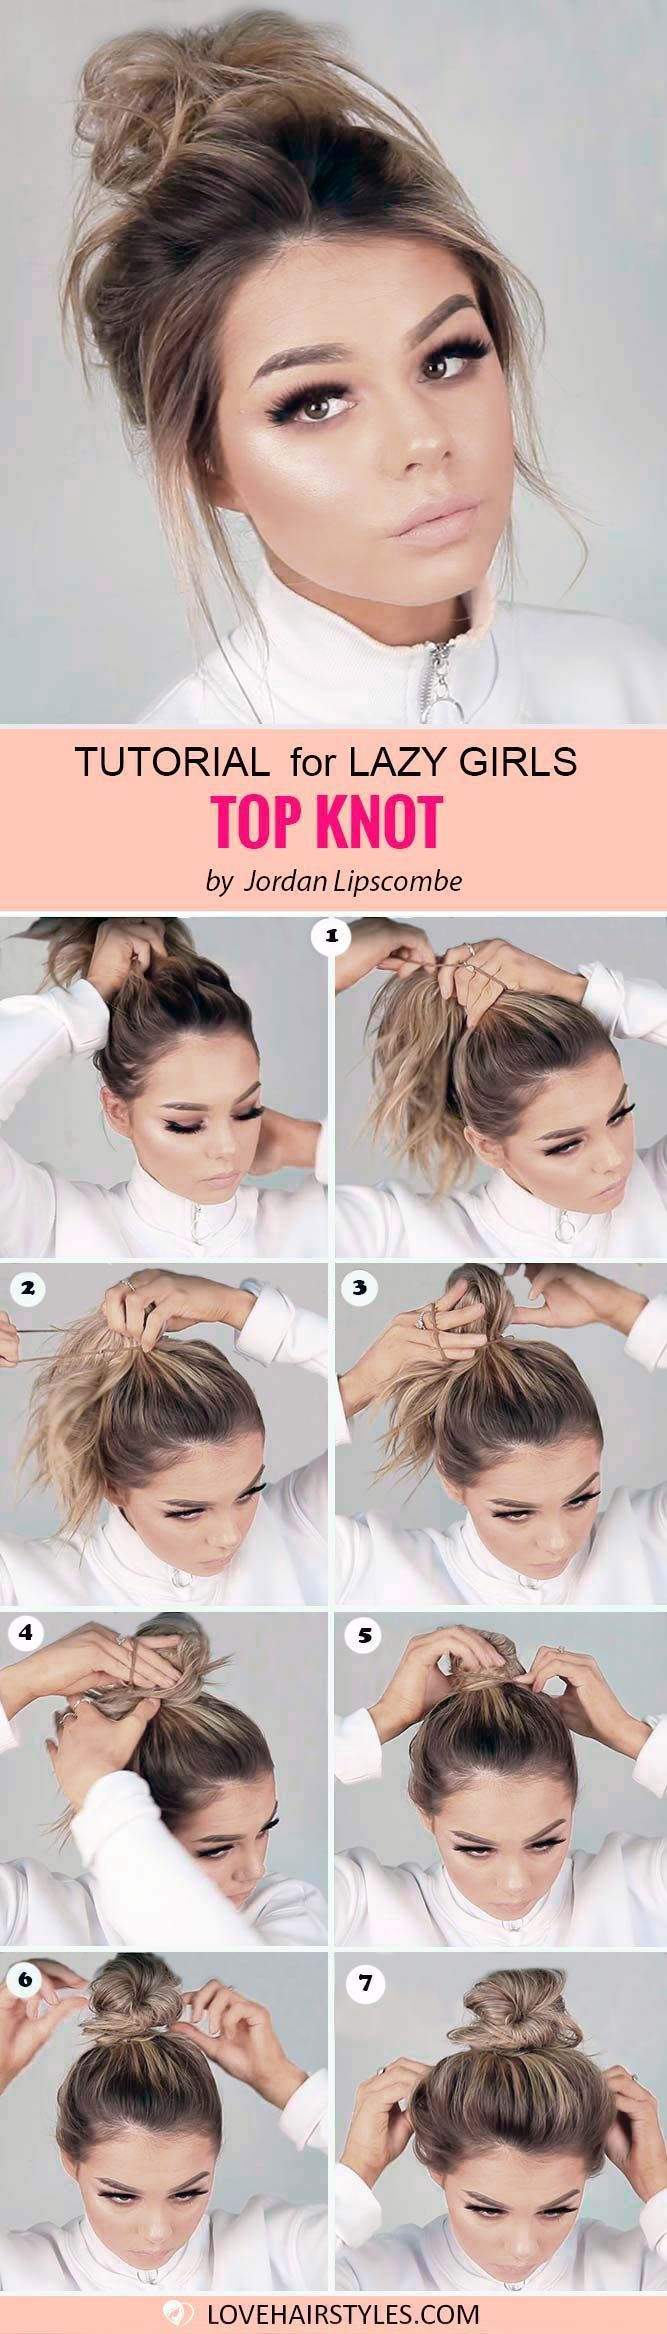 easy hairstyles for medium hair exist – lazy ladies, it is